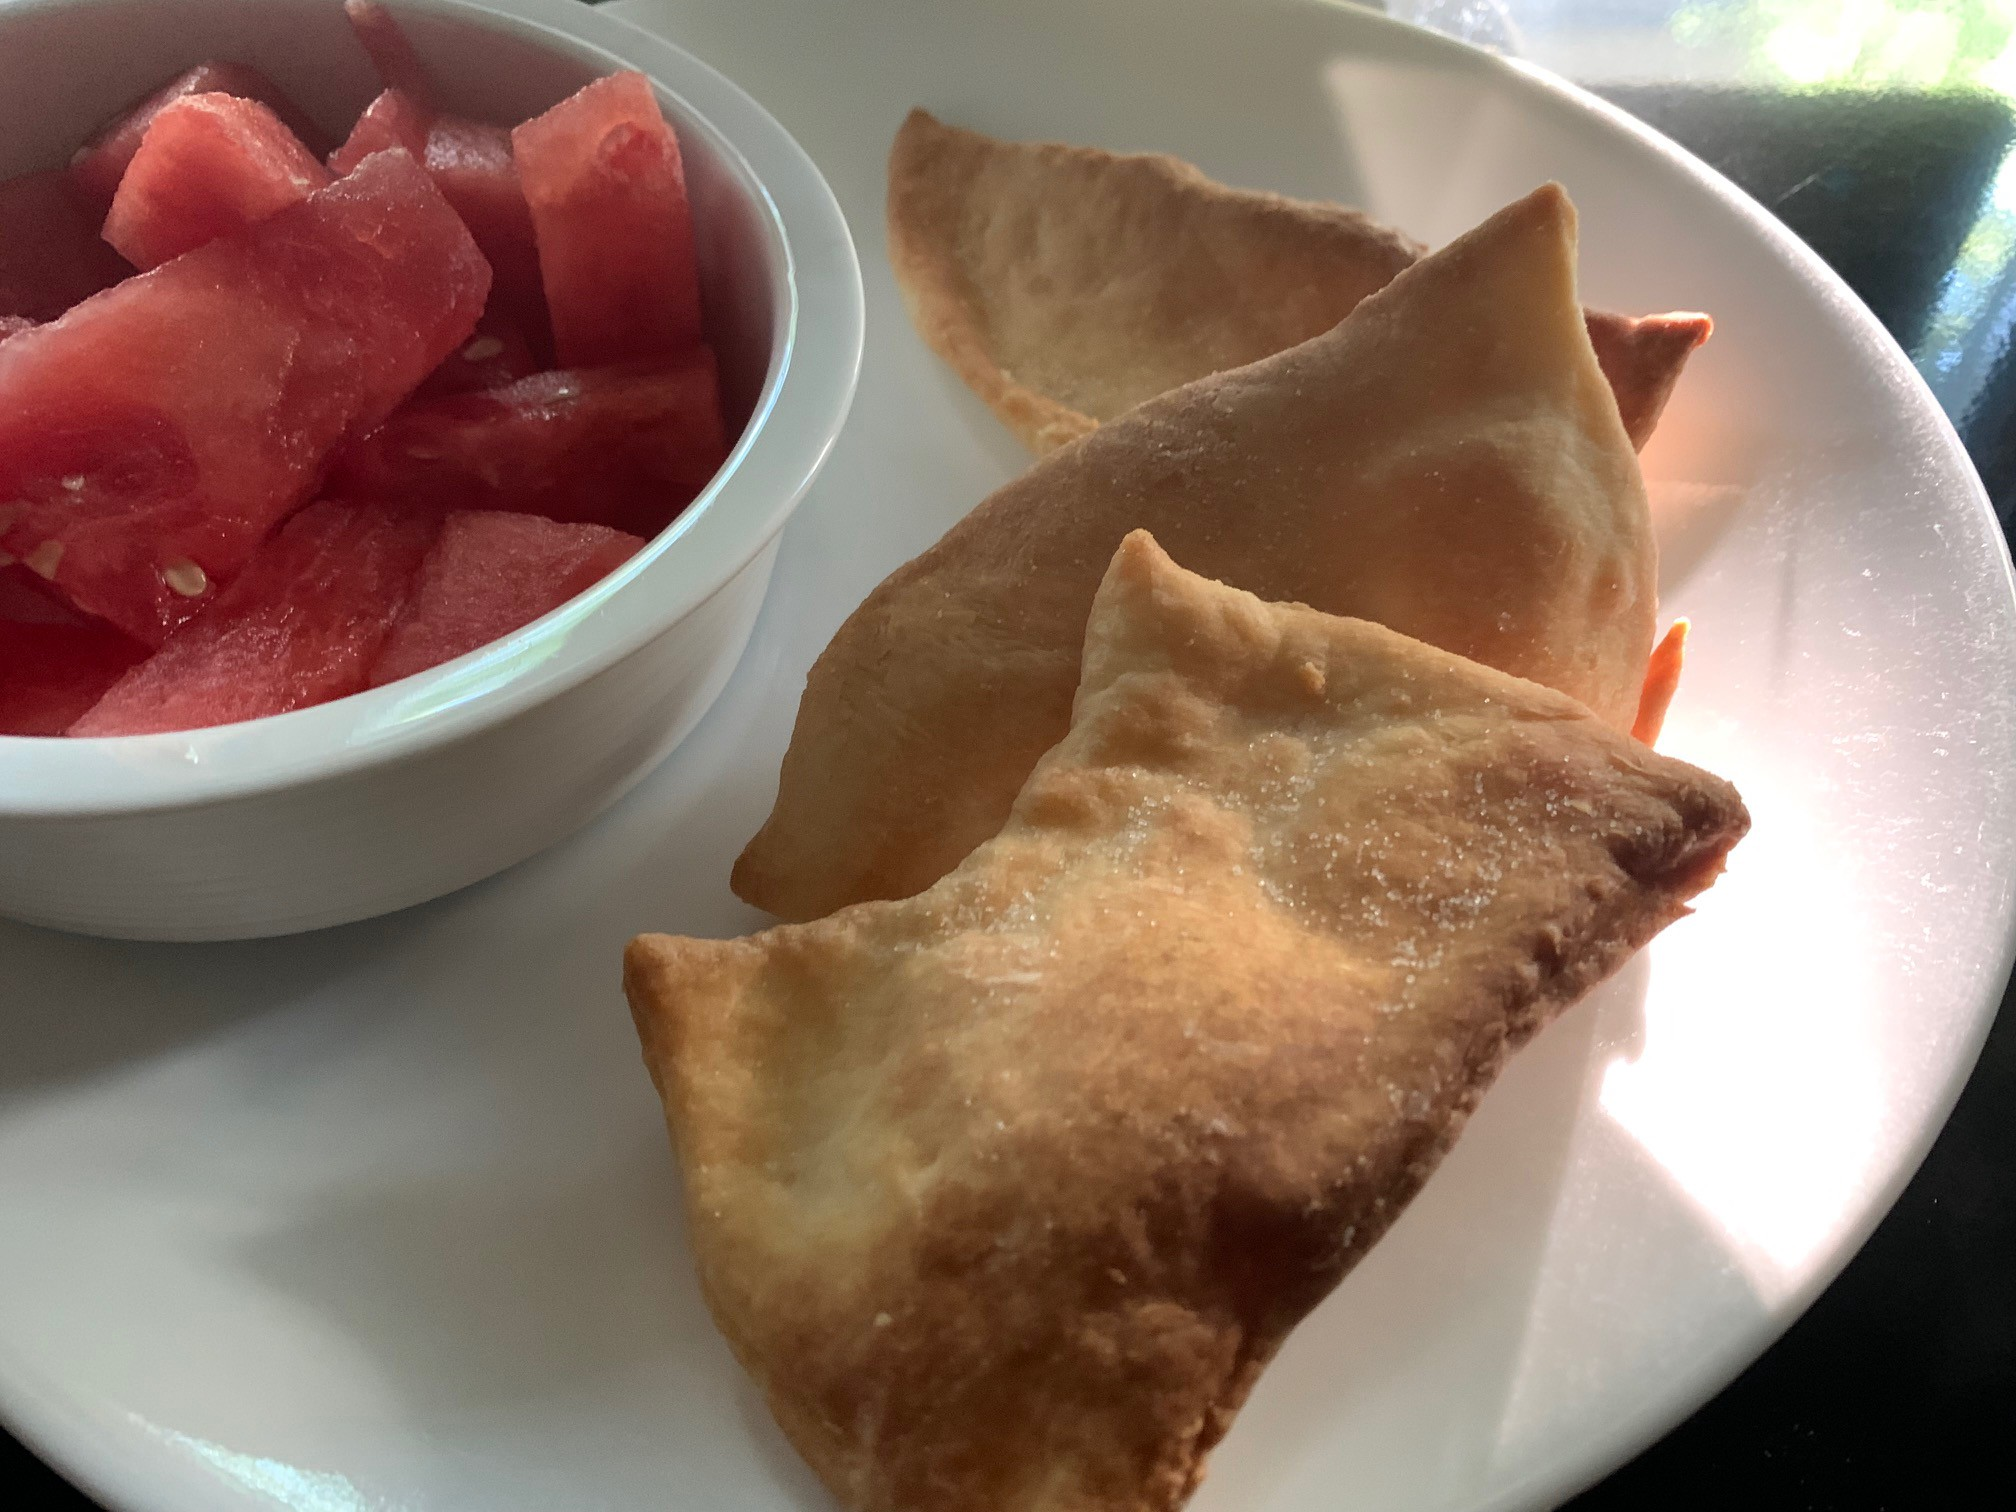 A small dish of sliced watermelon accompanies three glorious Rollkuchen. The perfect pairing of flavour and texture.